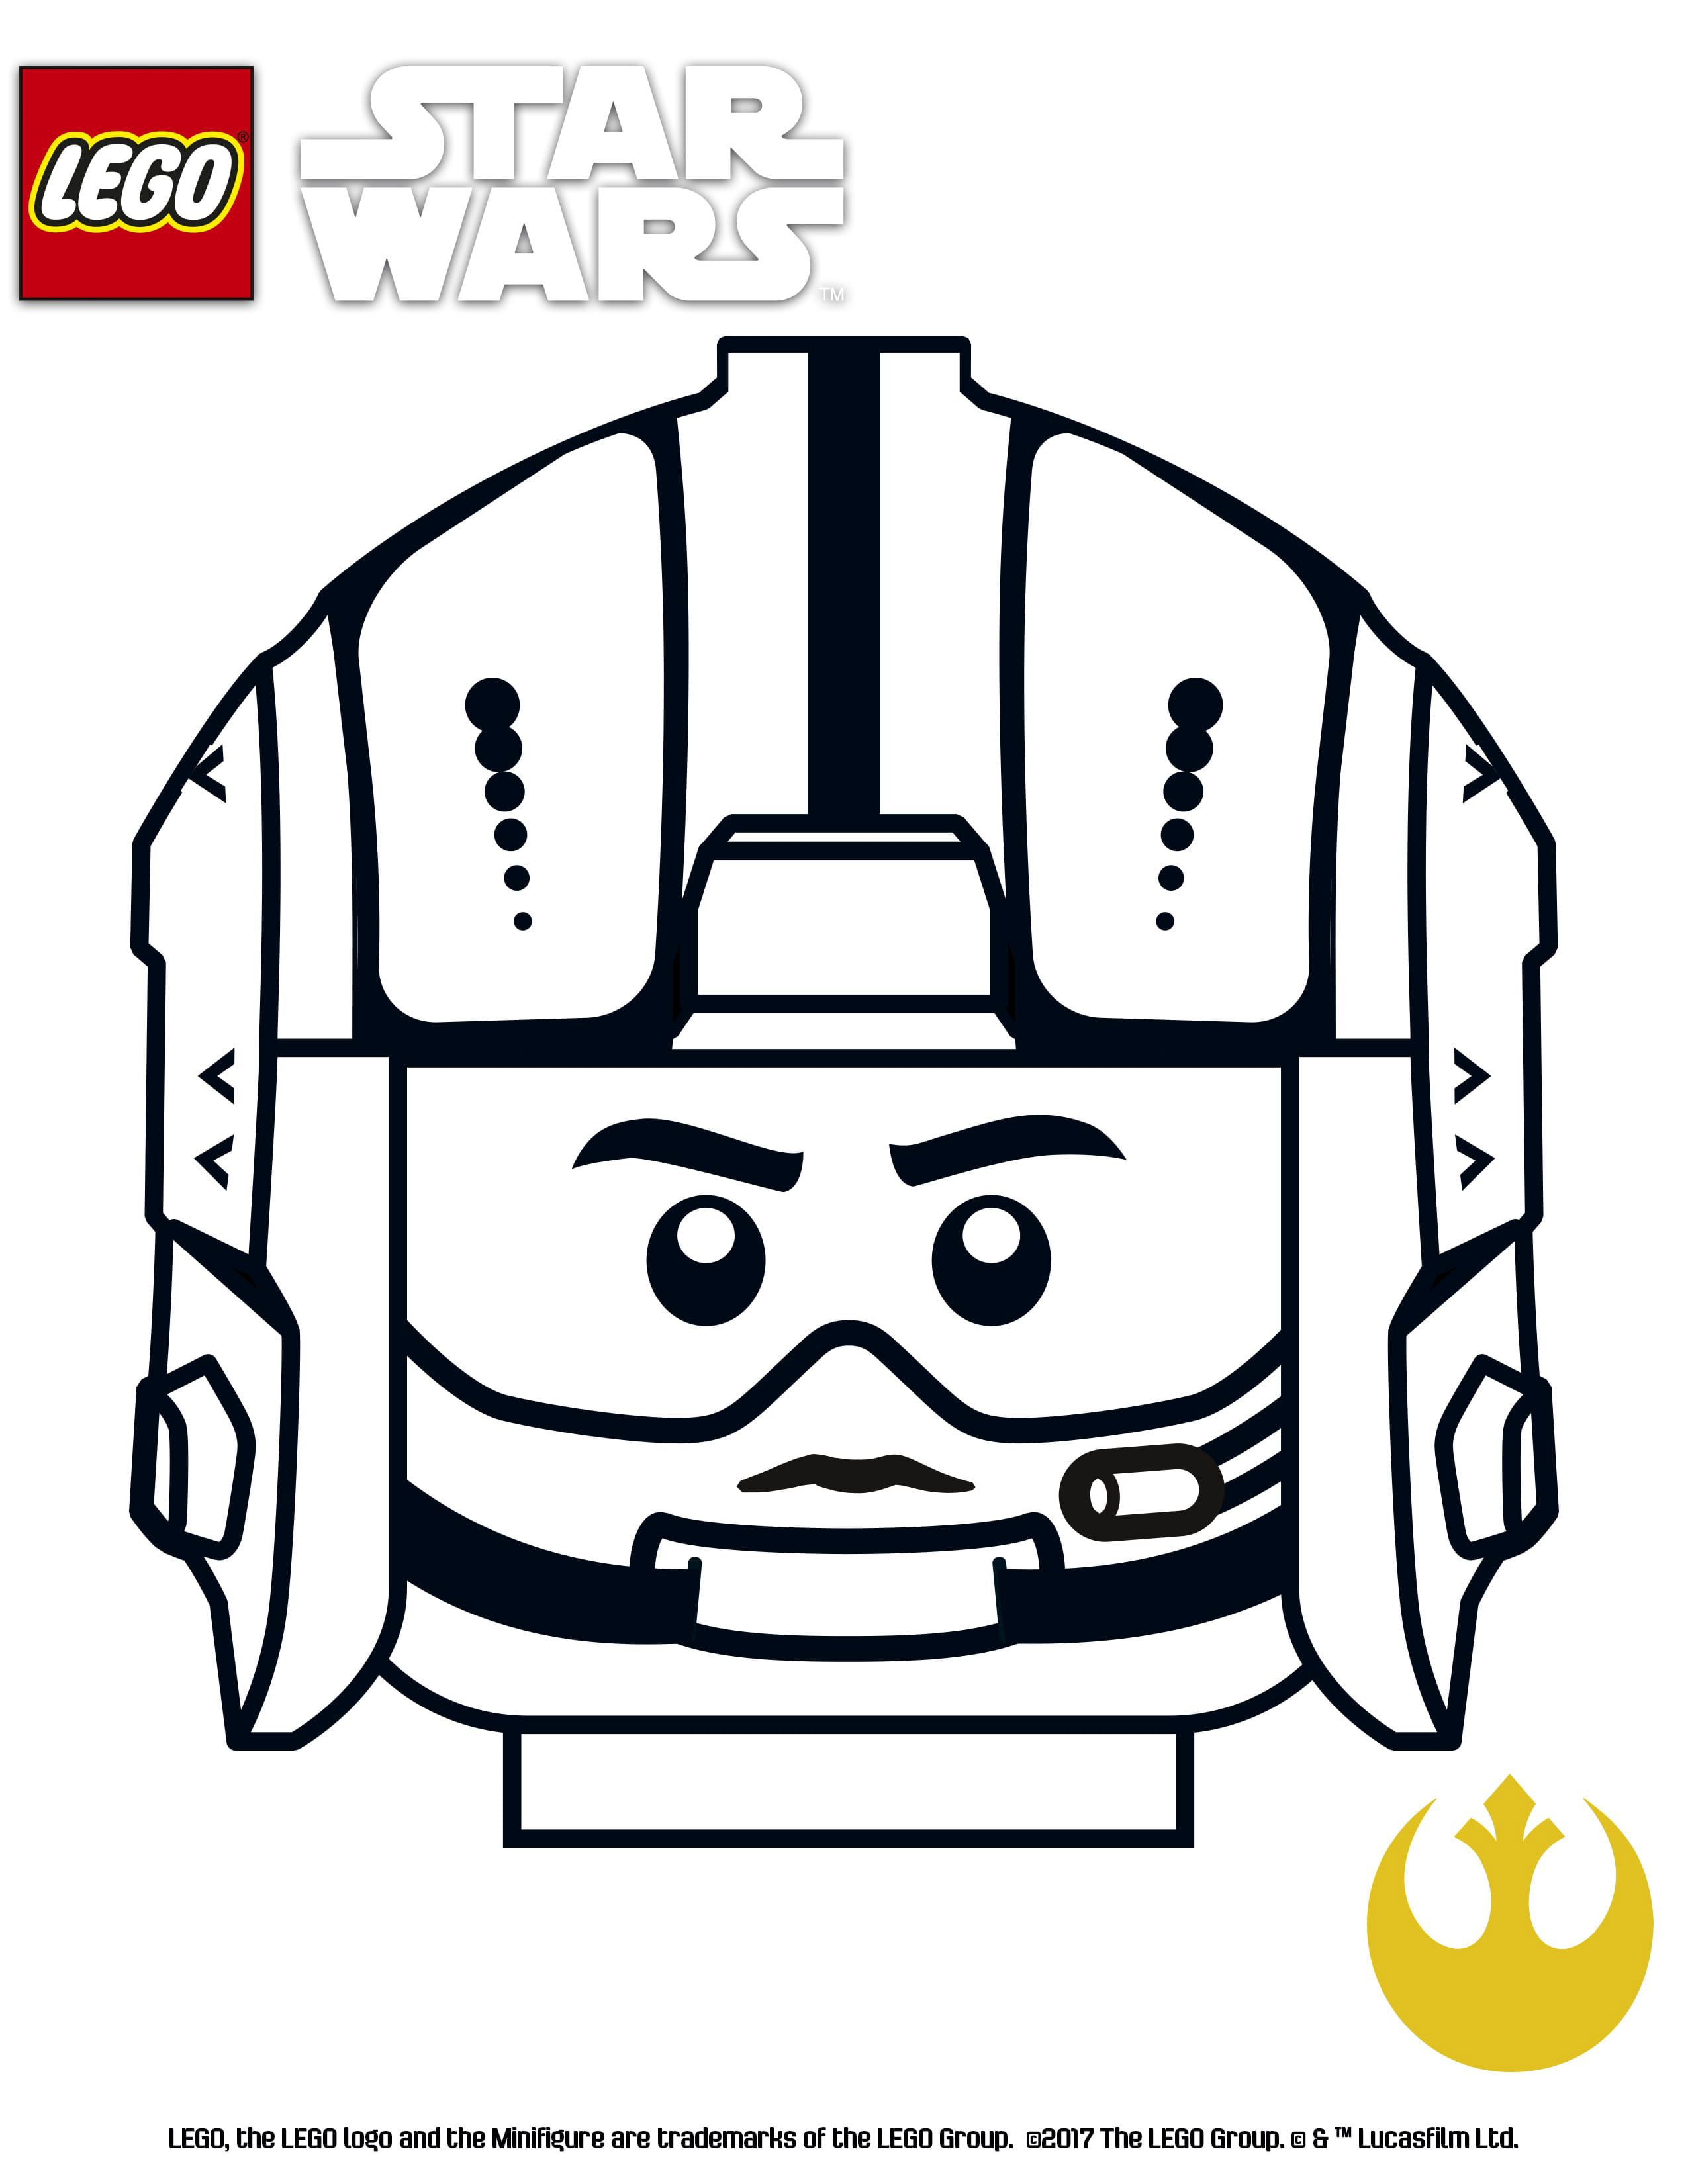 Lego Star Wars Coloring Pages Gold Suadron Lego Star Wars